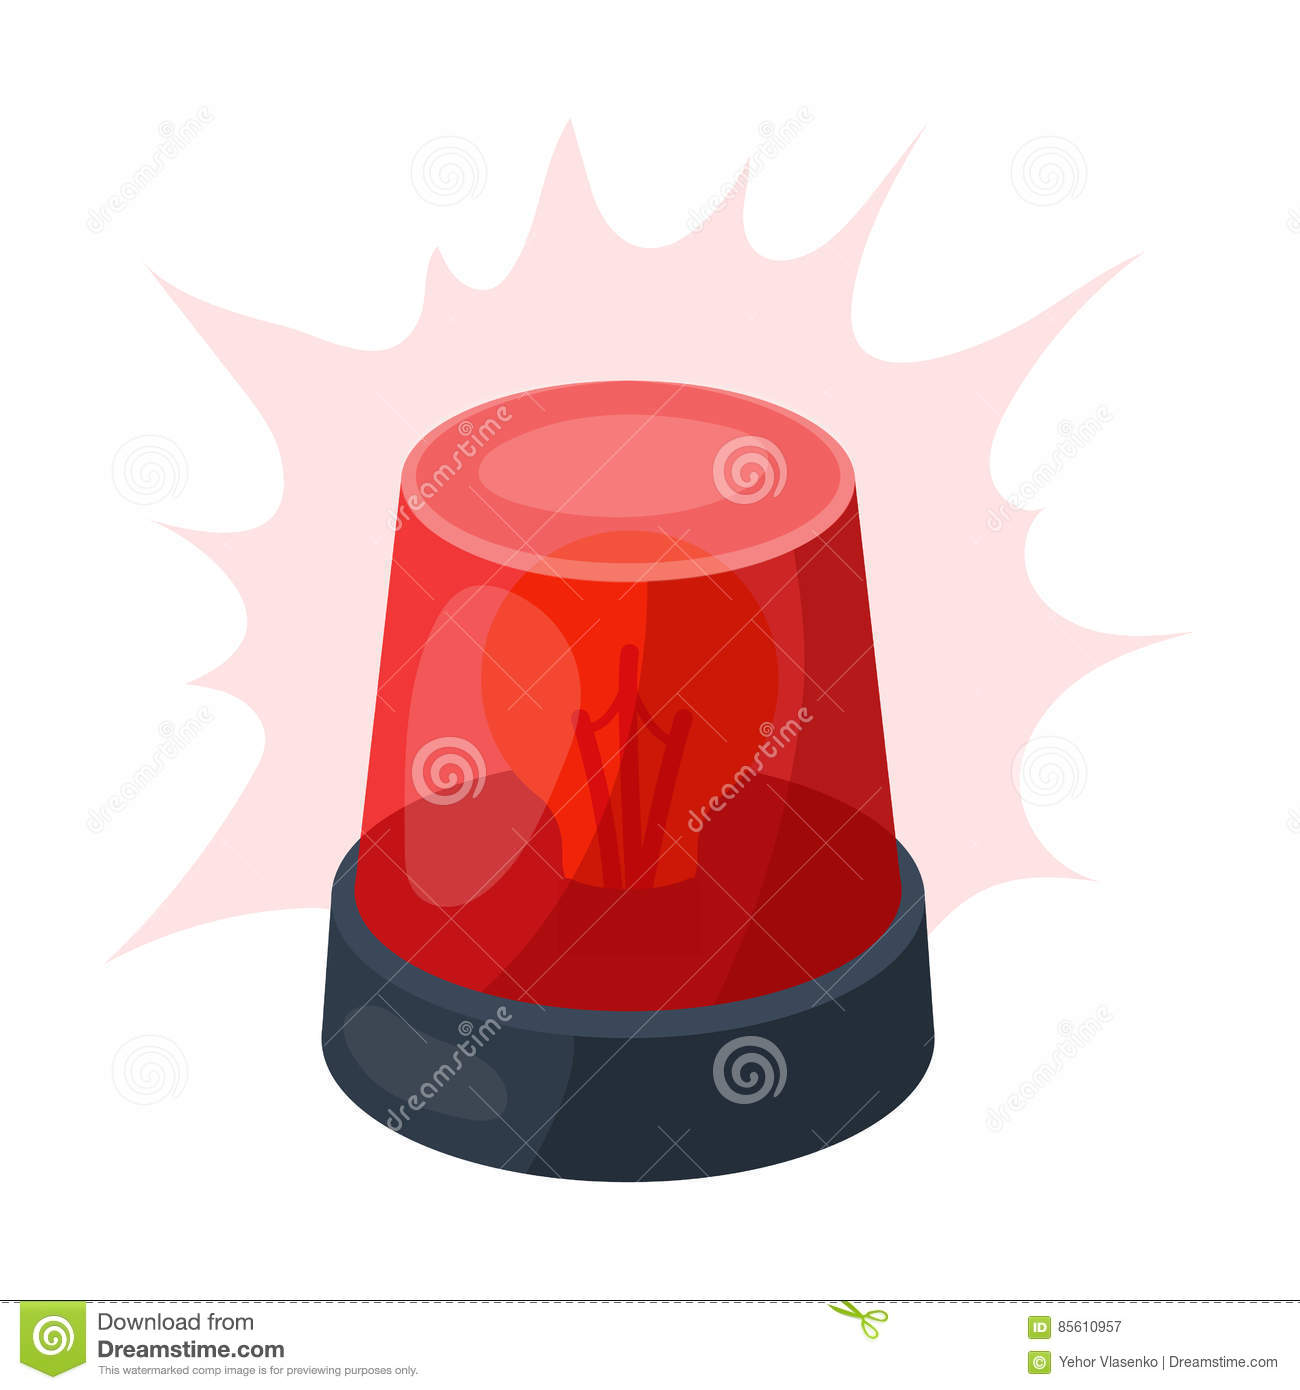 Flashing beacon clipart - Clipground for Warning Light Clipart  75sfw